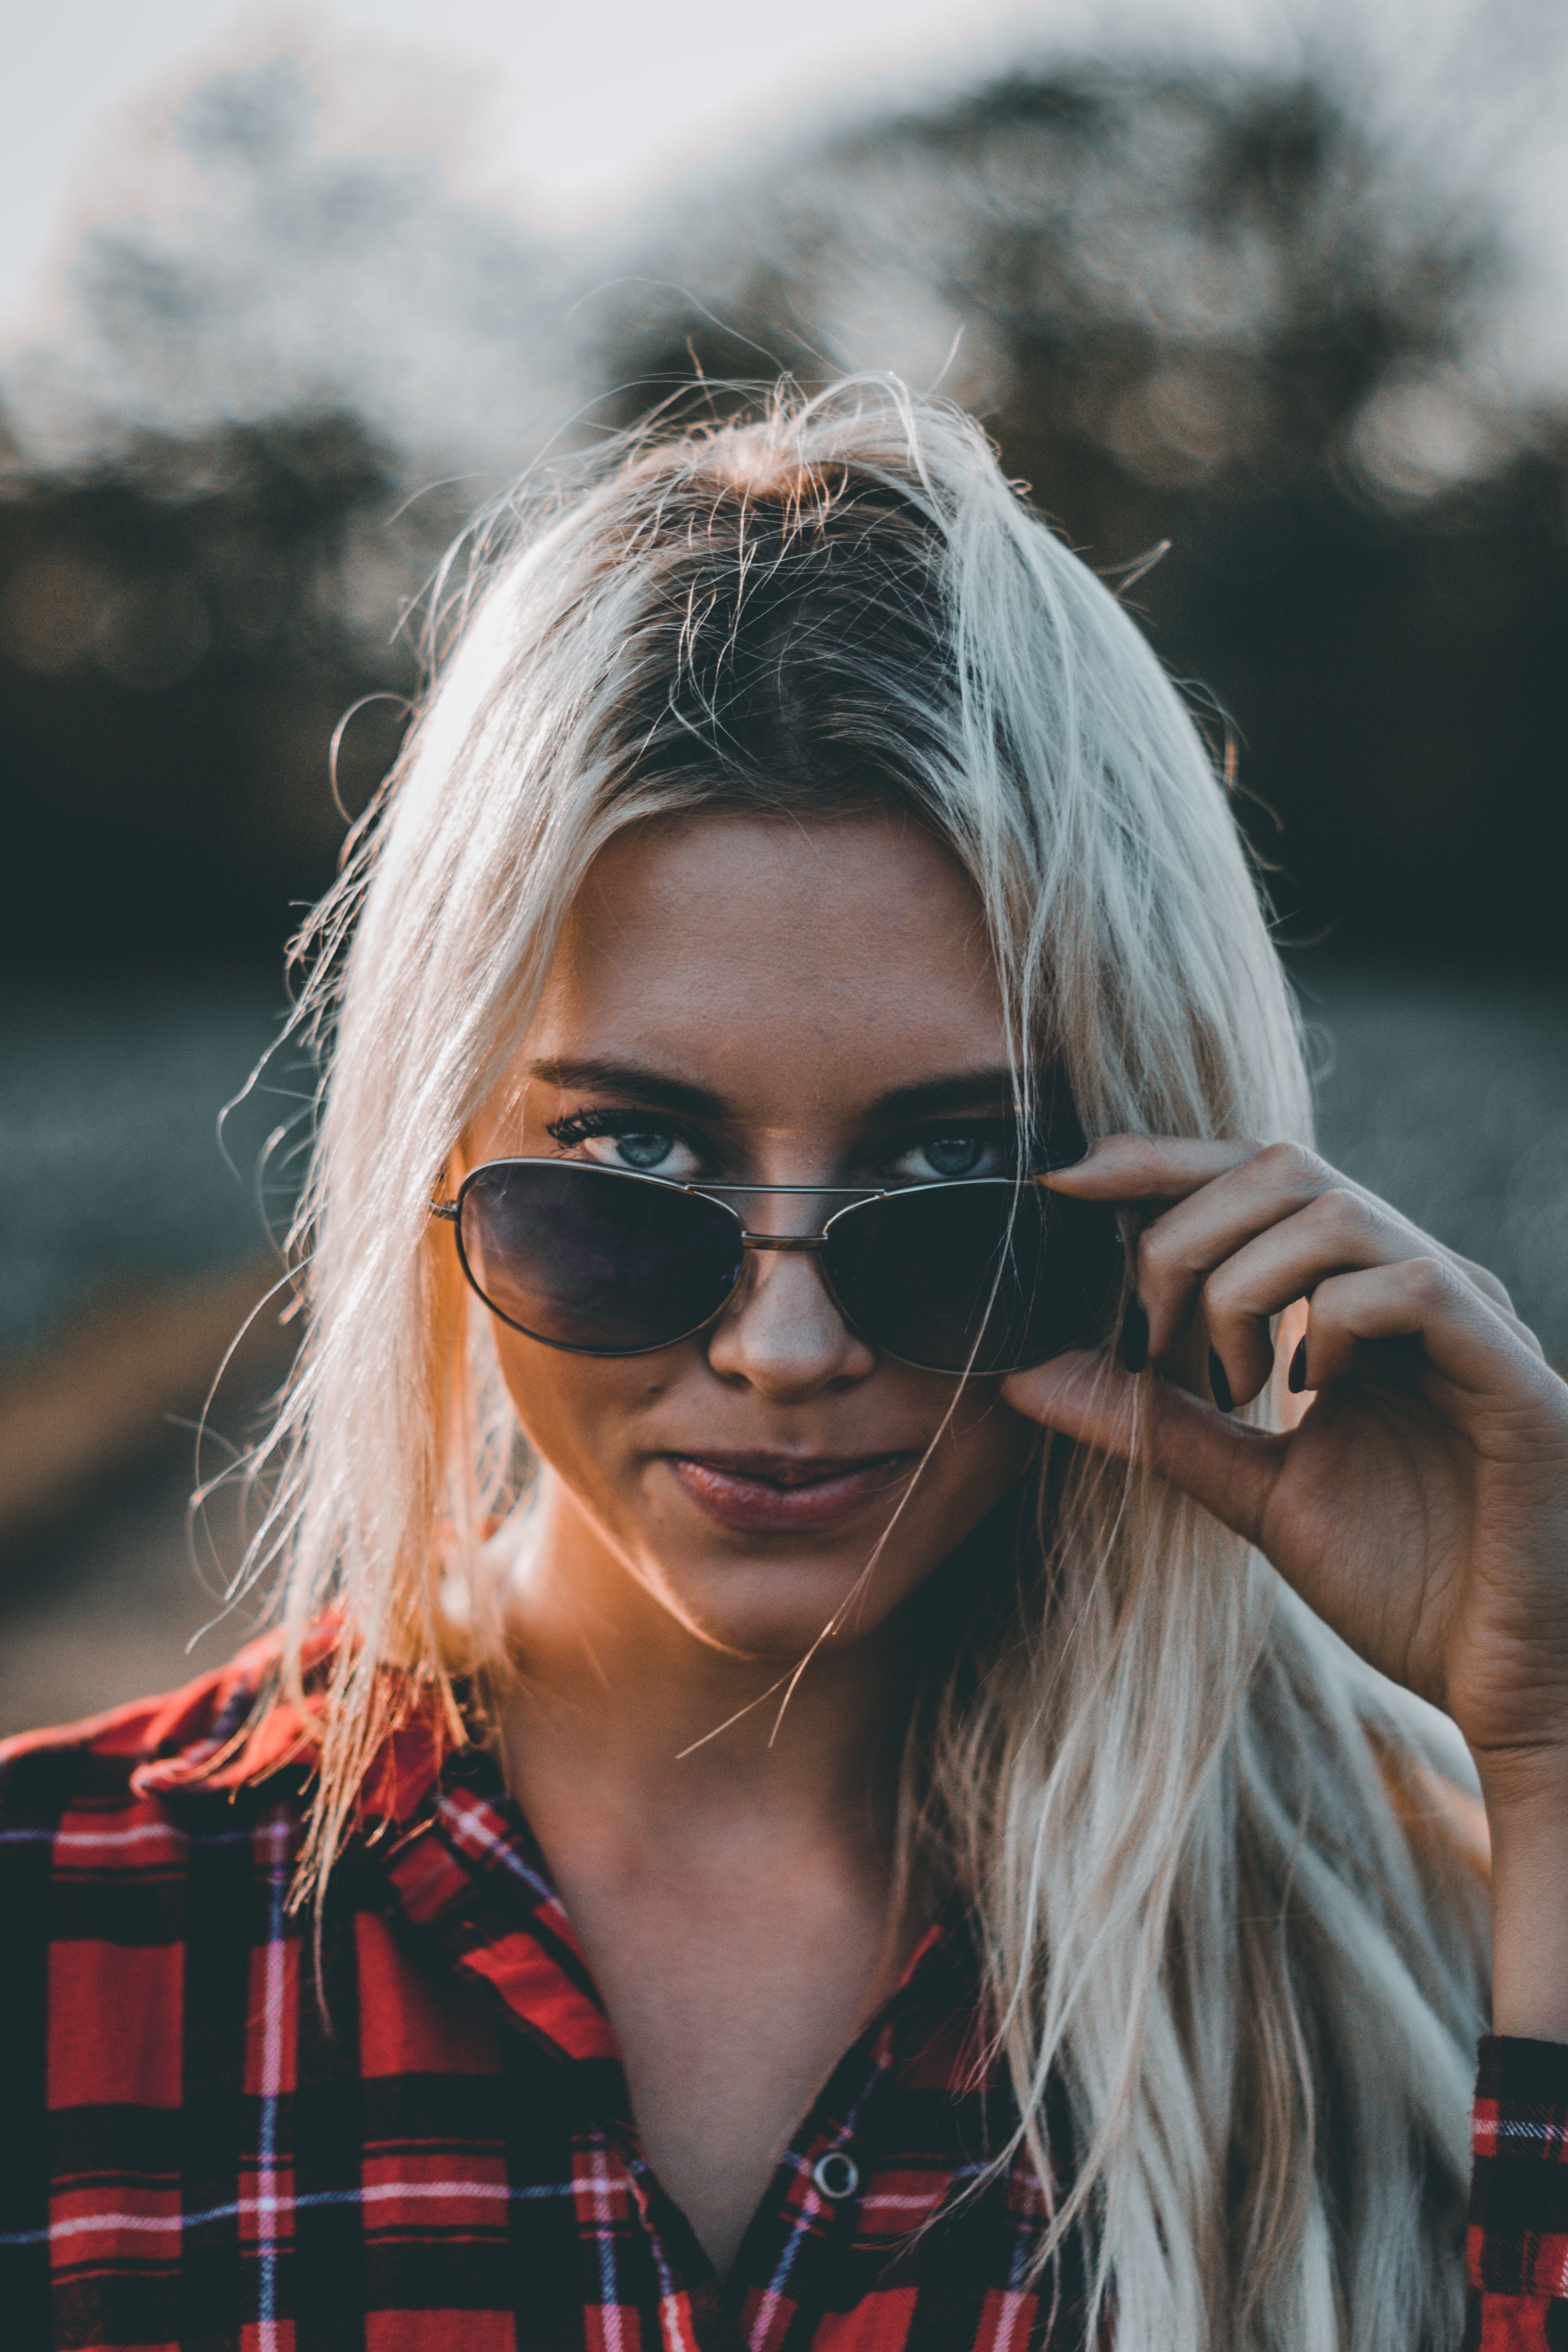 woman wearing red and black plaid top holding sunglasses